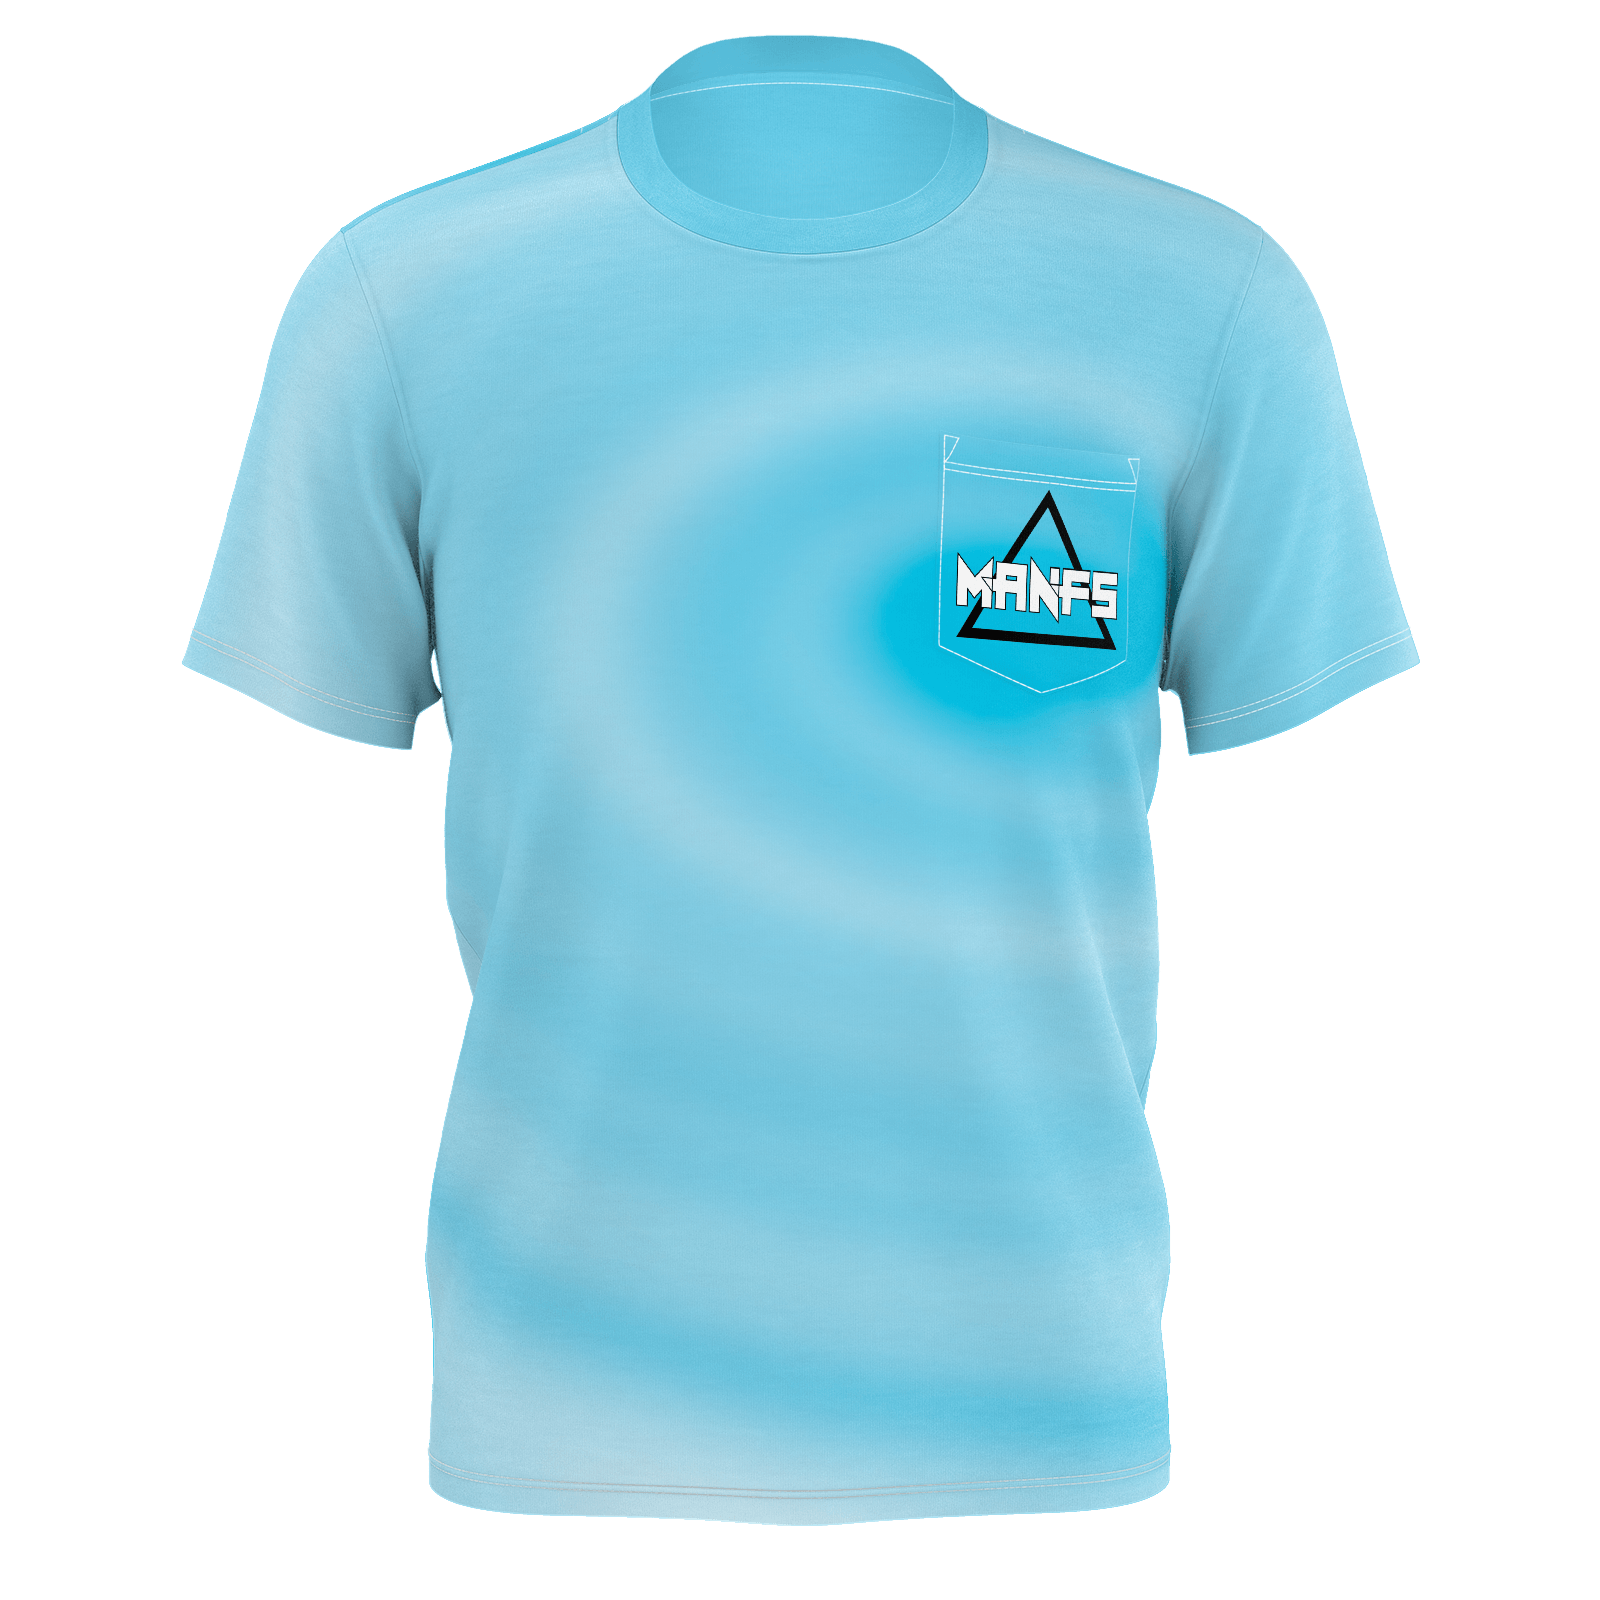 Mikey Manfs Blue Pocket T-Shirt